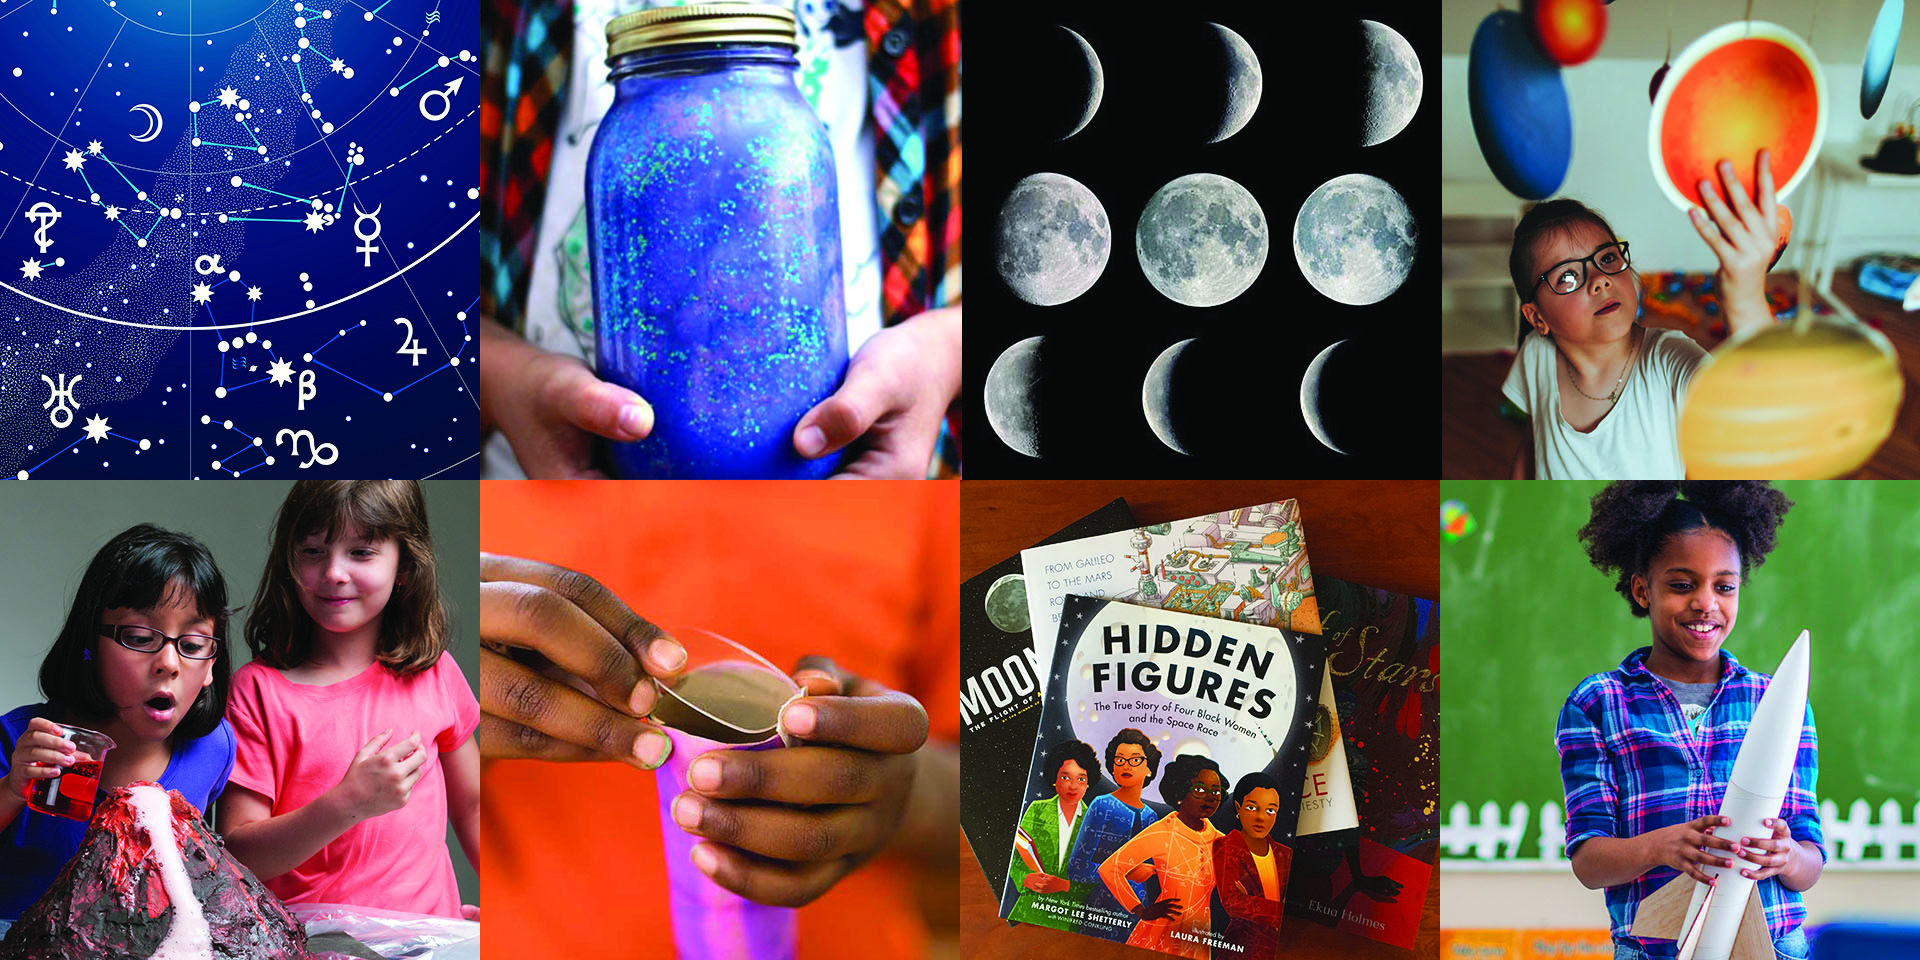 Summer science: multicultural young children doing space exploration activities